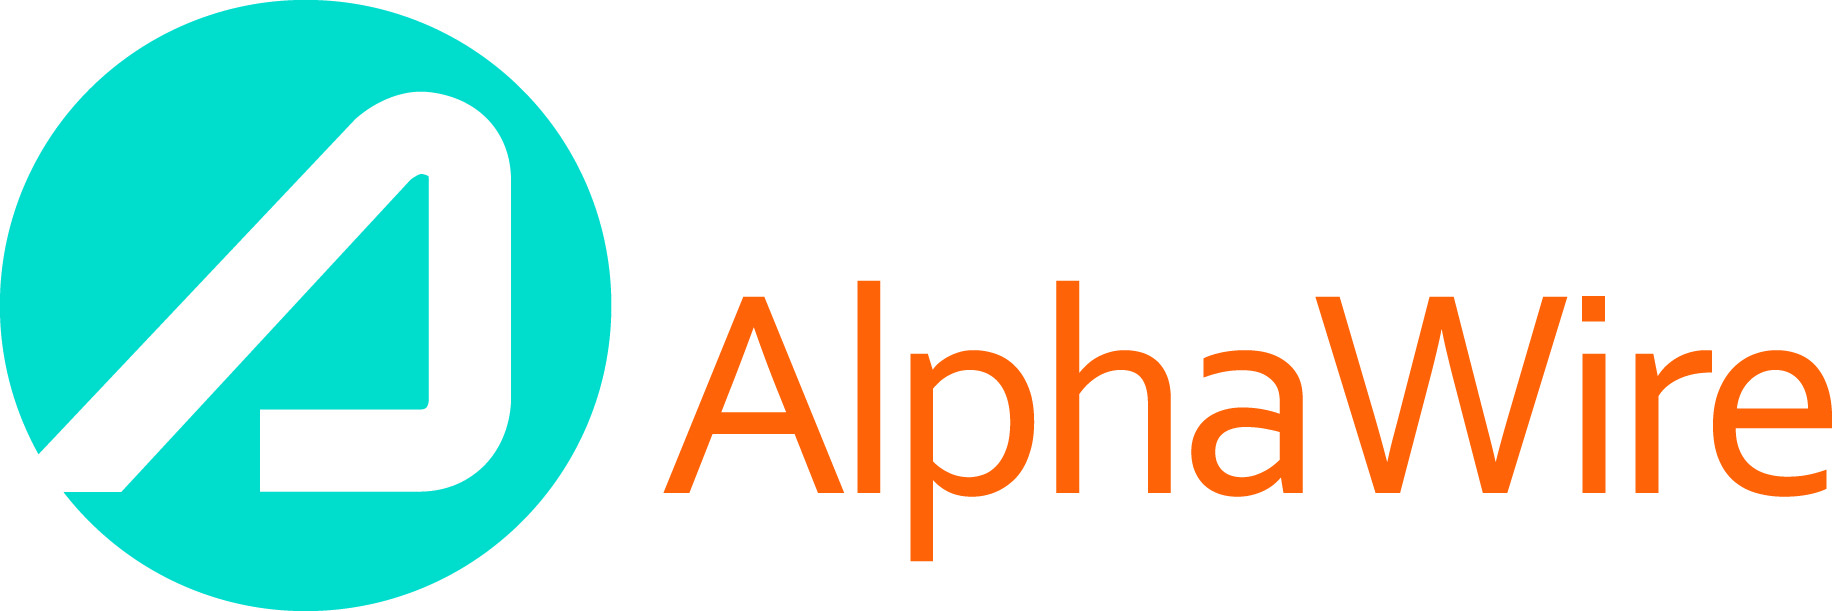 Image result for alphawire logo